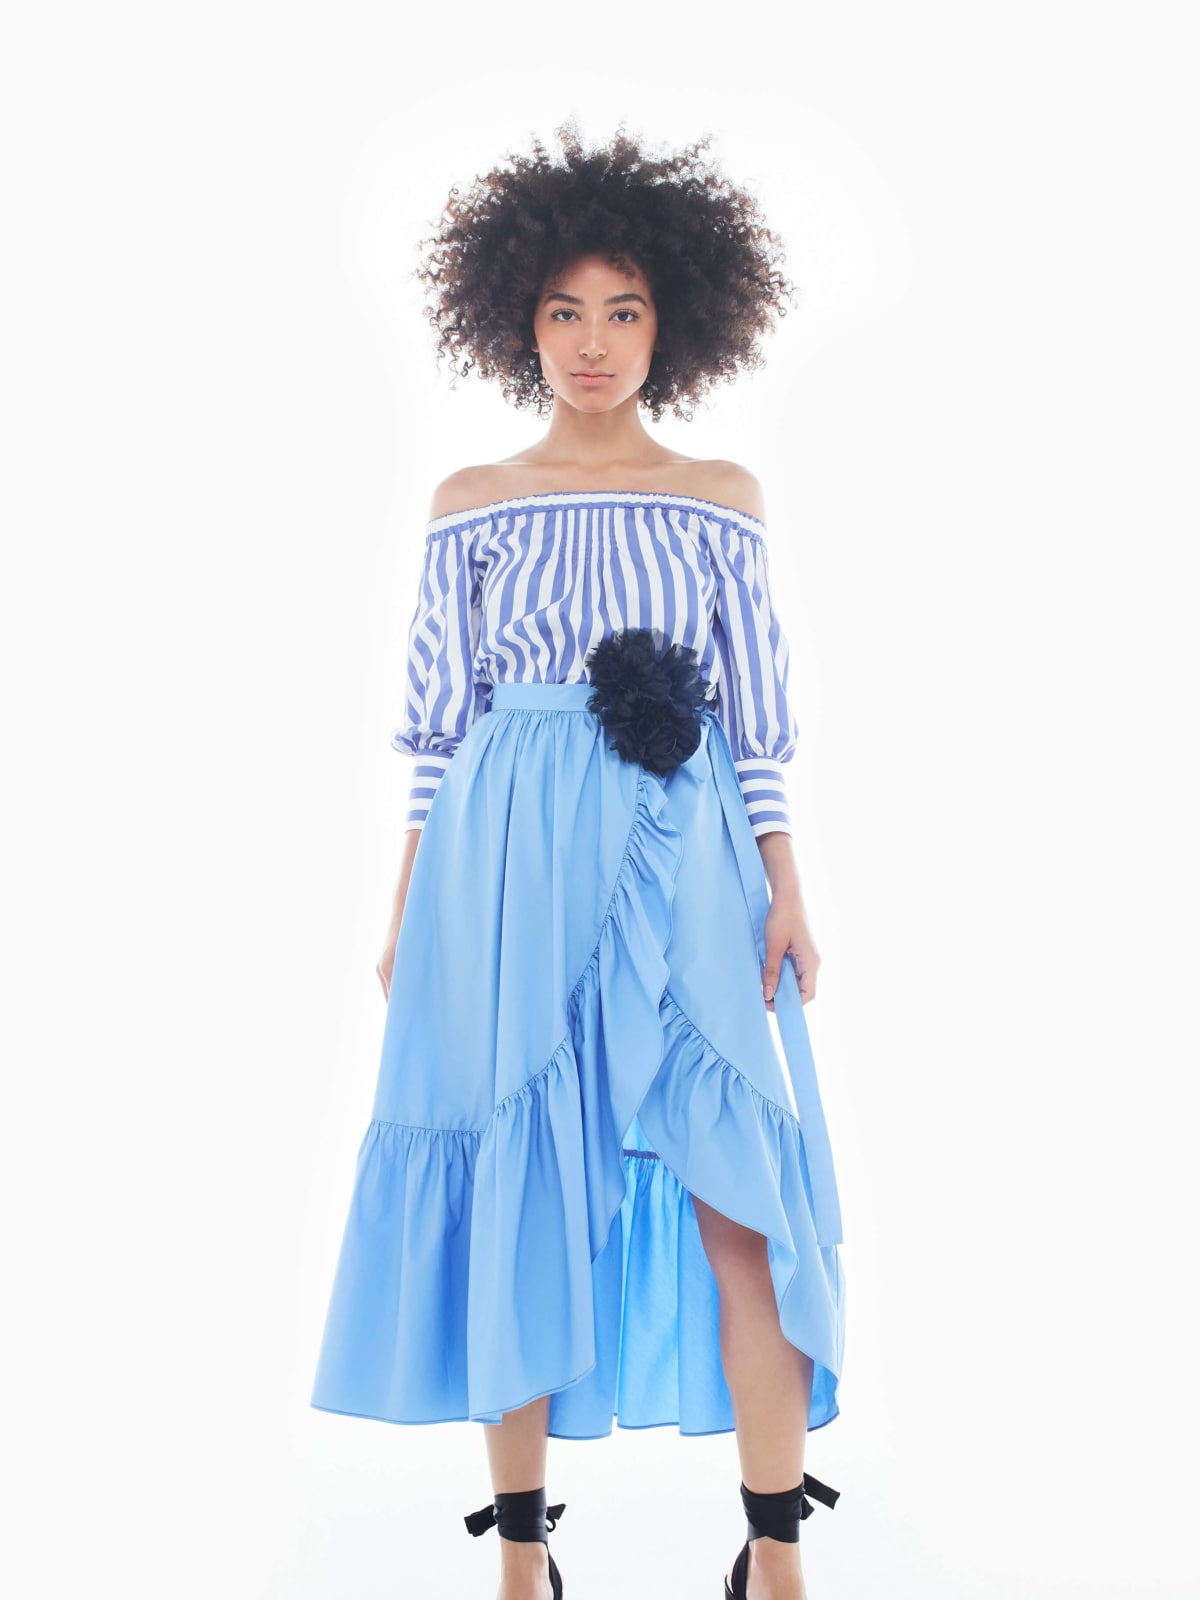 J.Crew 2017 spring collection womenswear